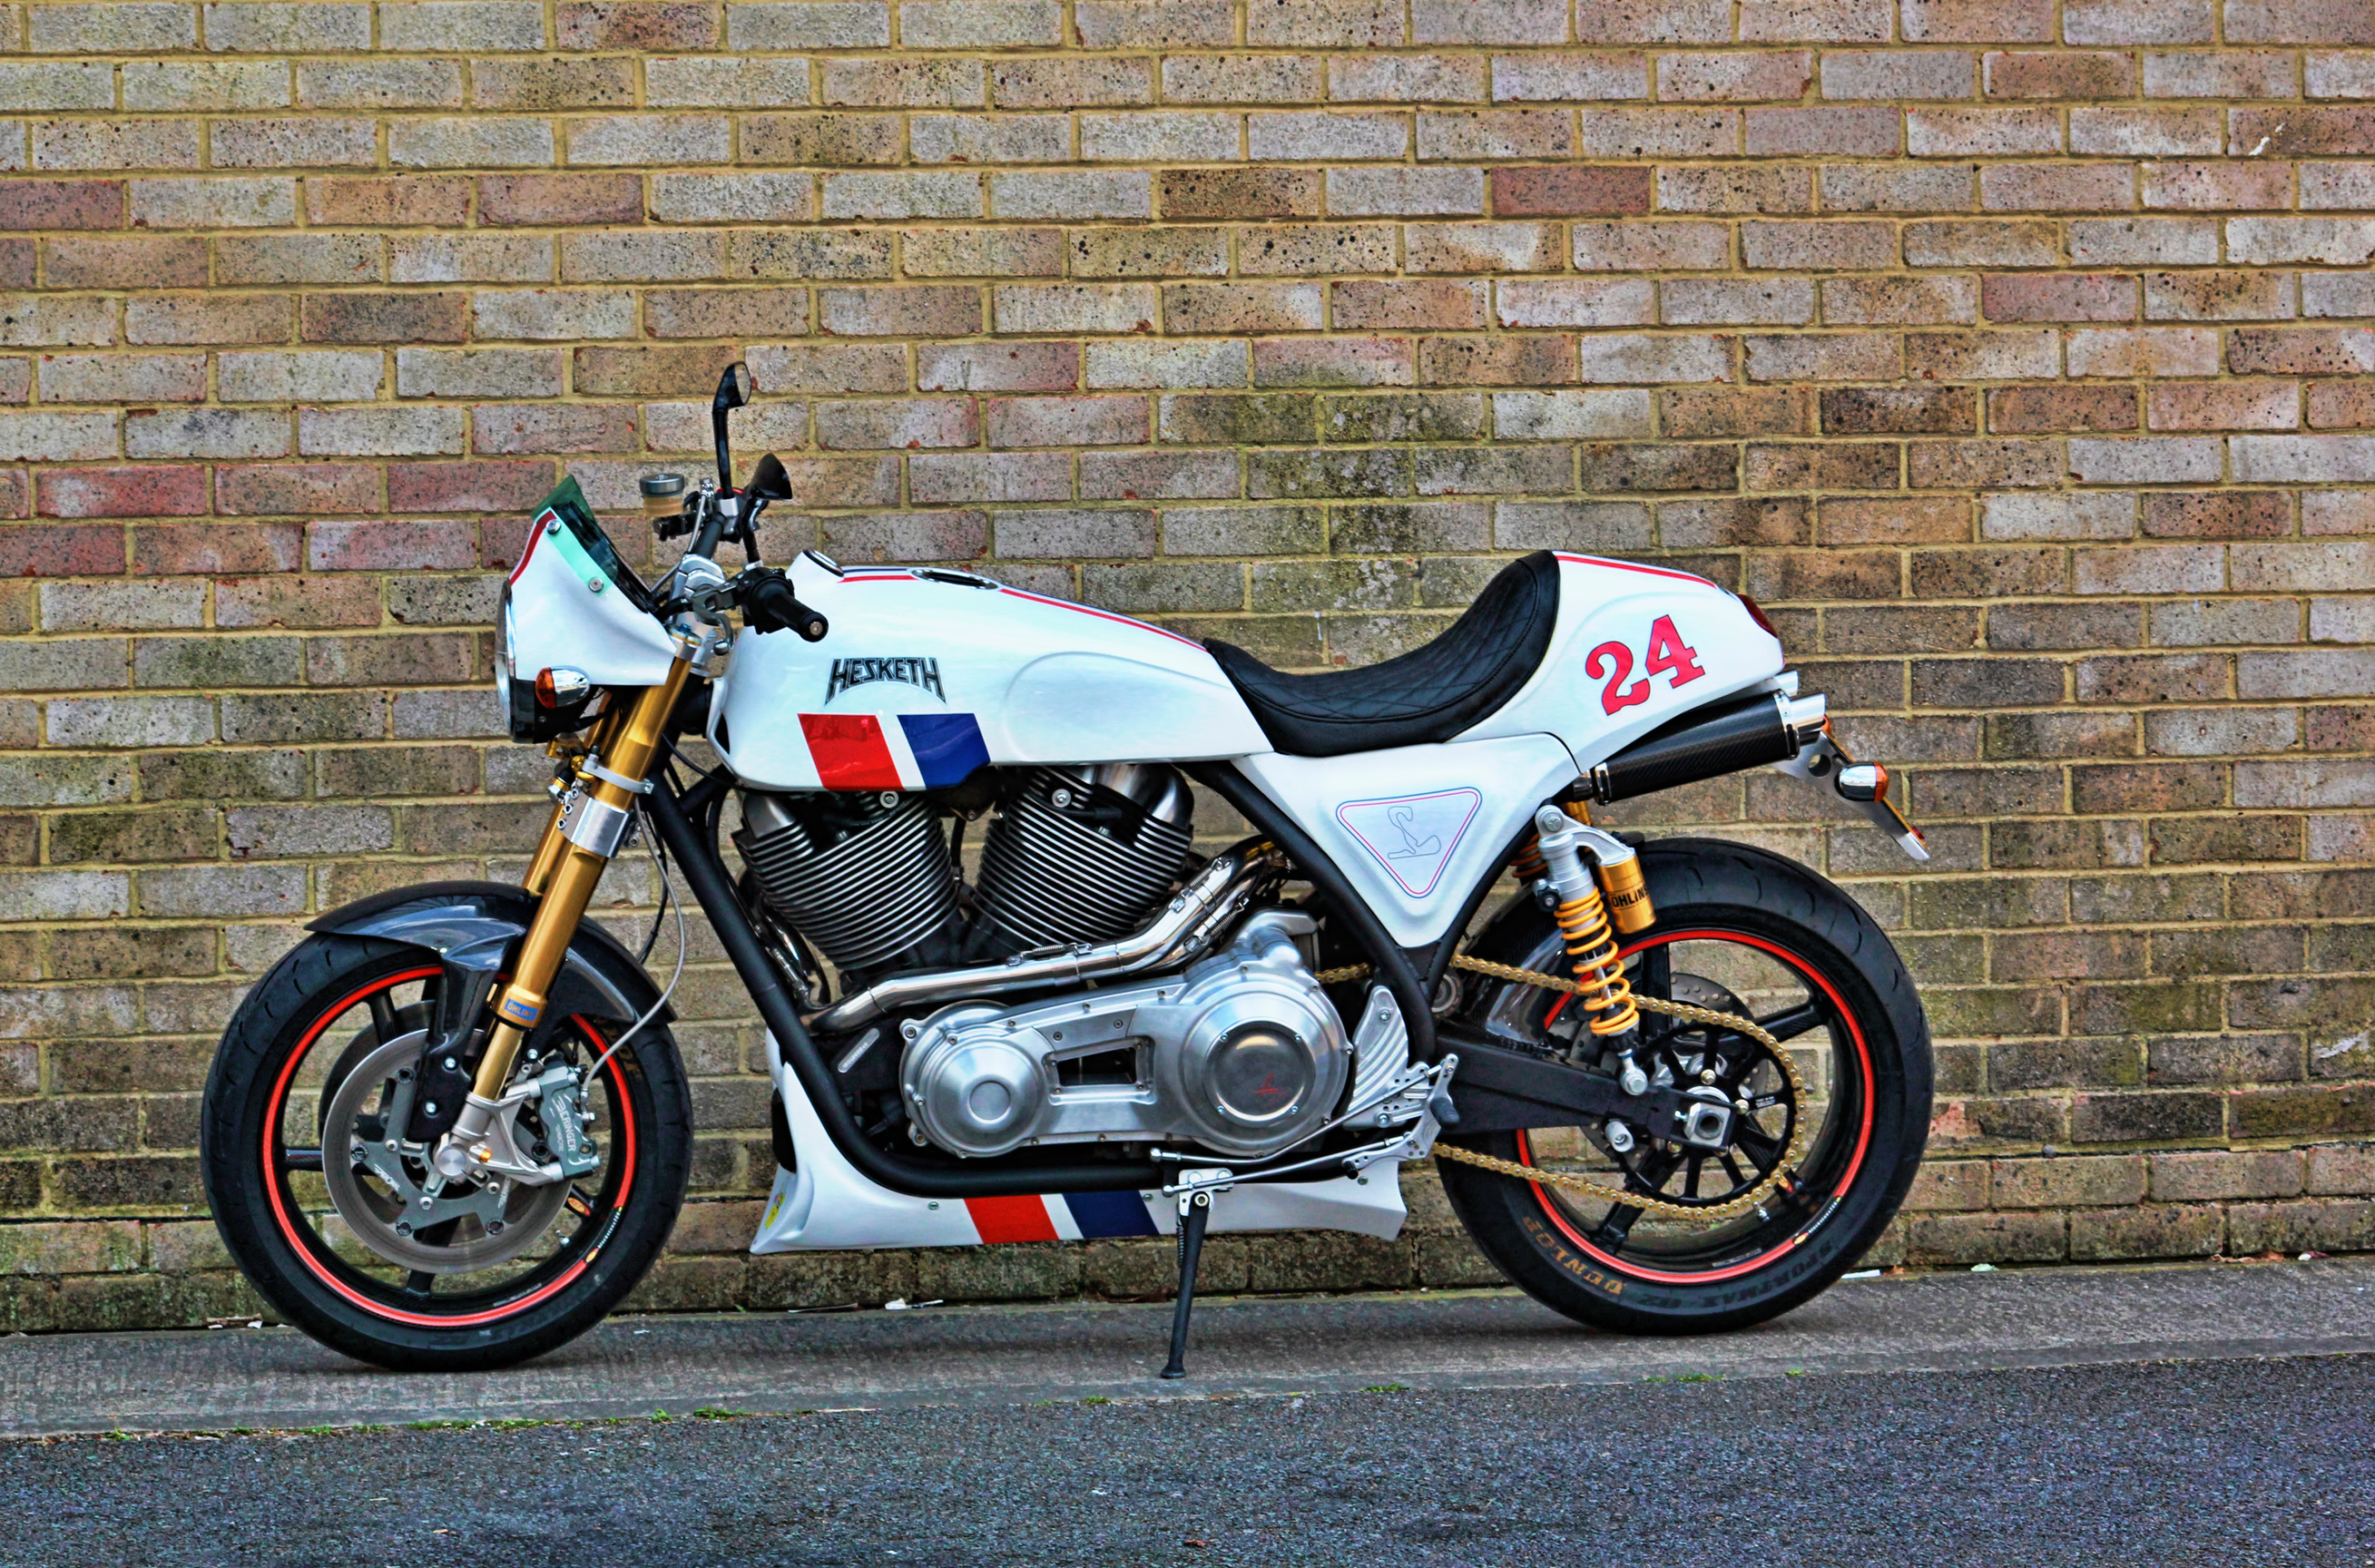 Hear The Amazing Grunt Of The Hesketh V Twin Engine Videophoto Gallery